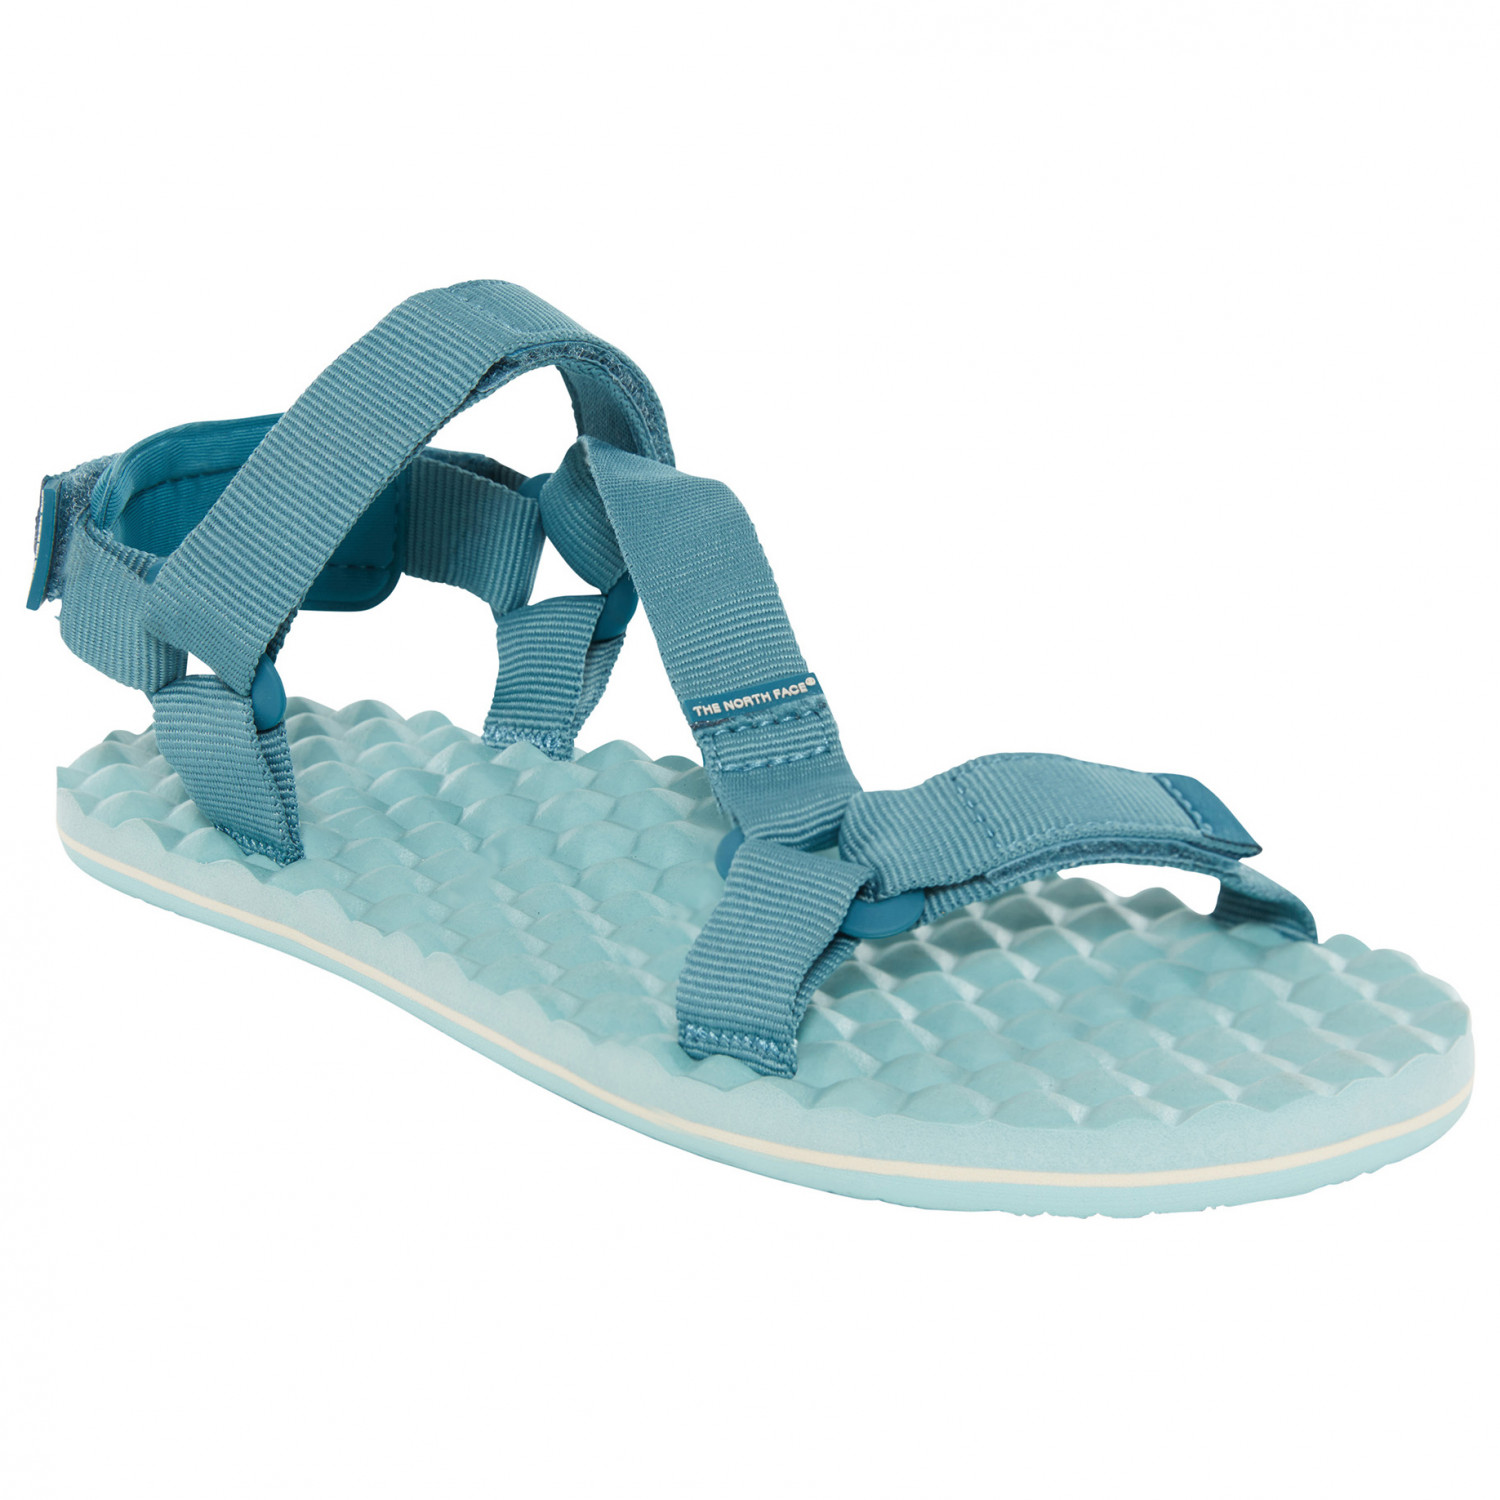 a6ae32b0a The North Face - Women's Base Camp Switchback Sandal - Sandals - Pink Salt  / Meld Grey | 9 (US)